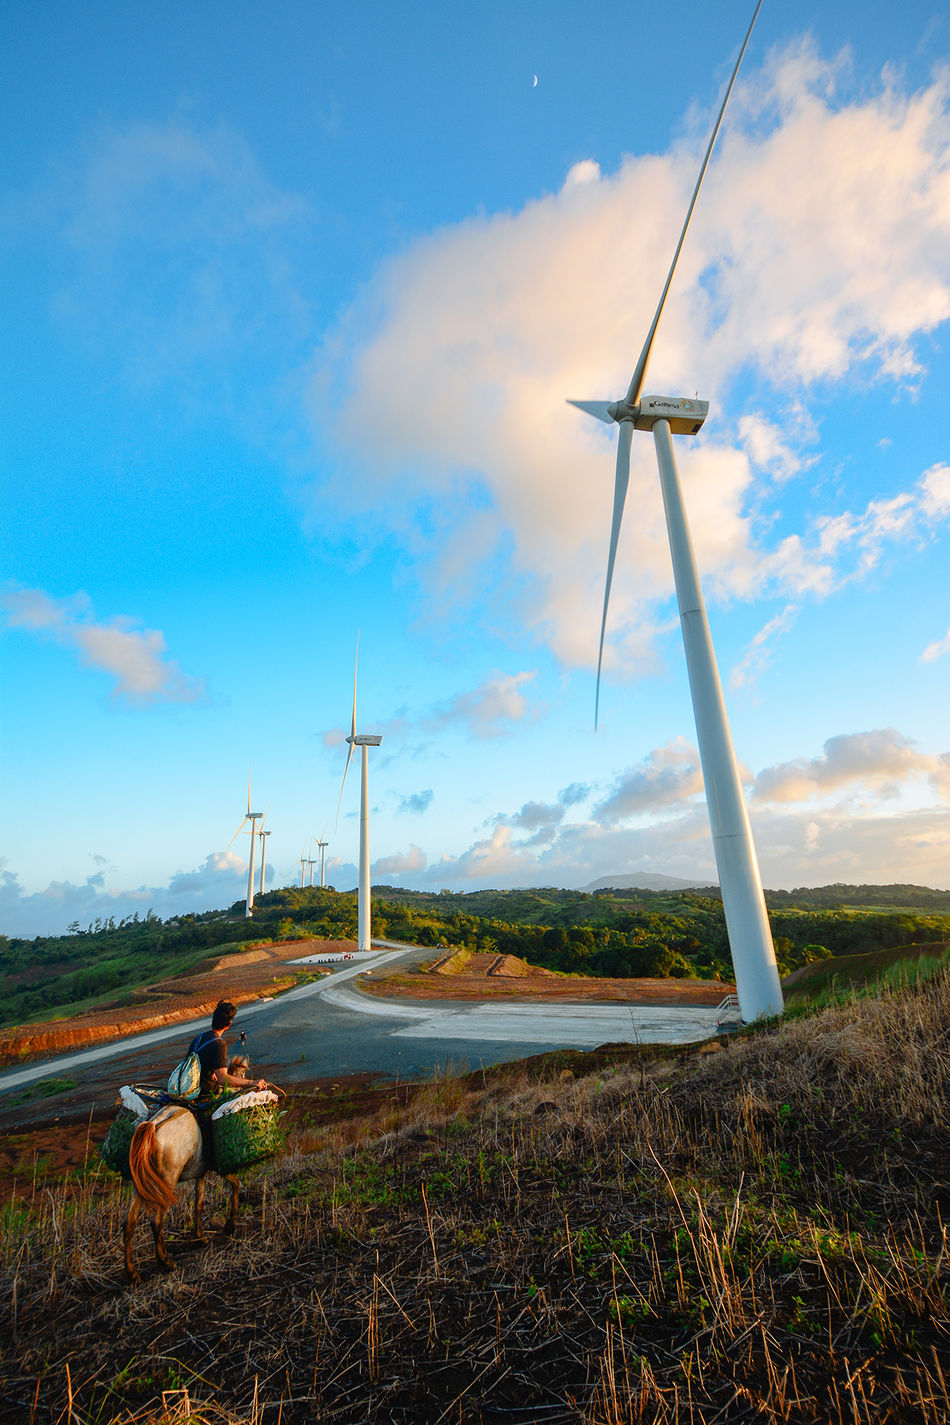 At the Pililia Rizal Wind Farm. A source of renewable energy a couple of hours away from Manila Blue Clear Sky Environmental Conservation Outdoors Pililia Rizal Wind Farm Renewable Energy Wind Wind Farm Wind Turbine Windmills Showcase: November EyeEmBestPics Eyeem Philippines